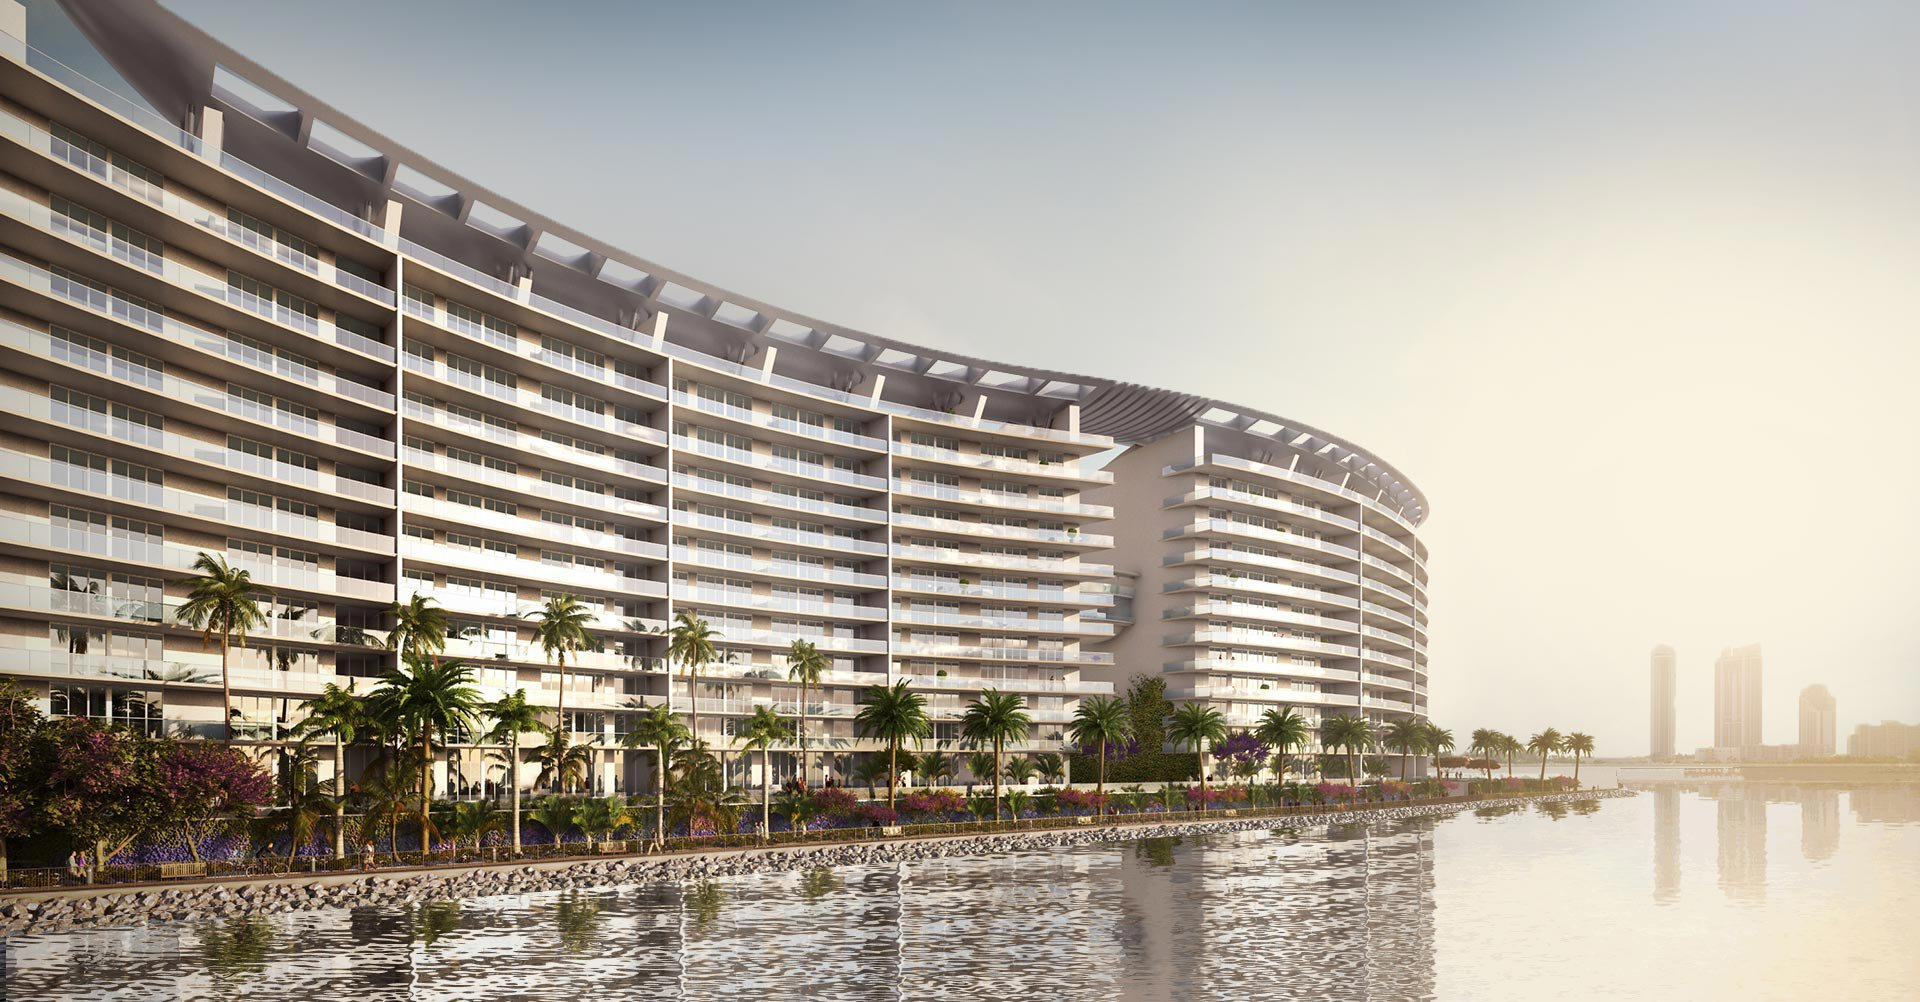 Rendering of the new residential project in Miami